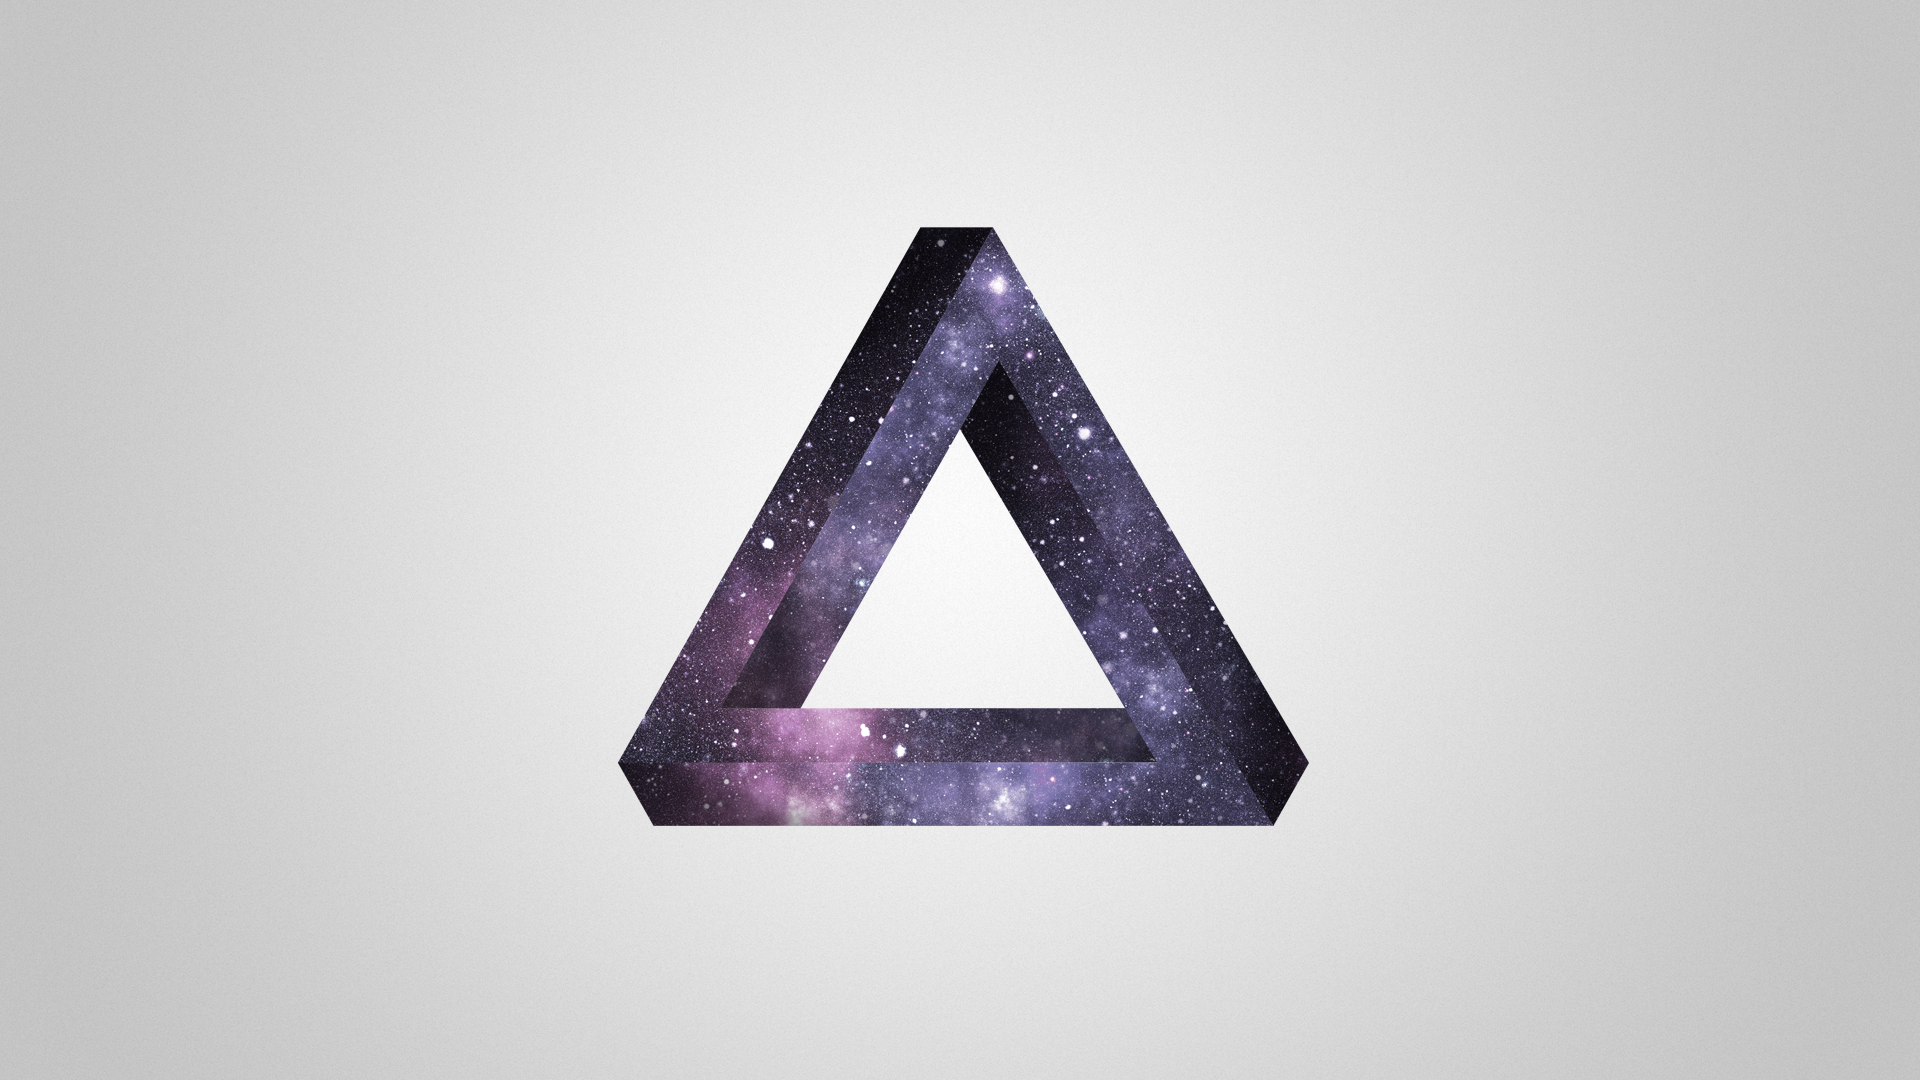 Cool Triangle Wallpaper